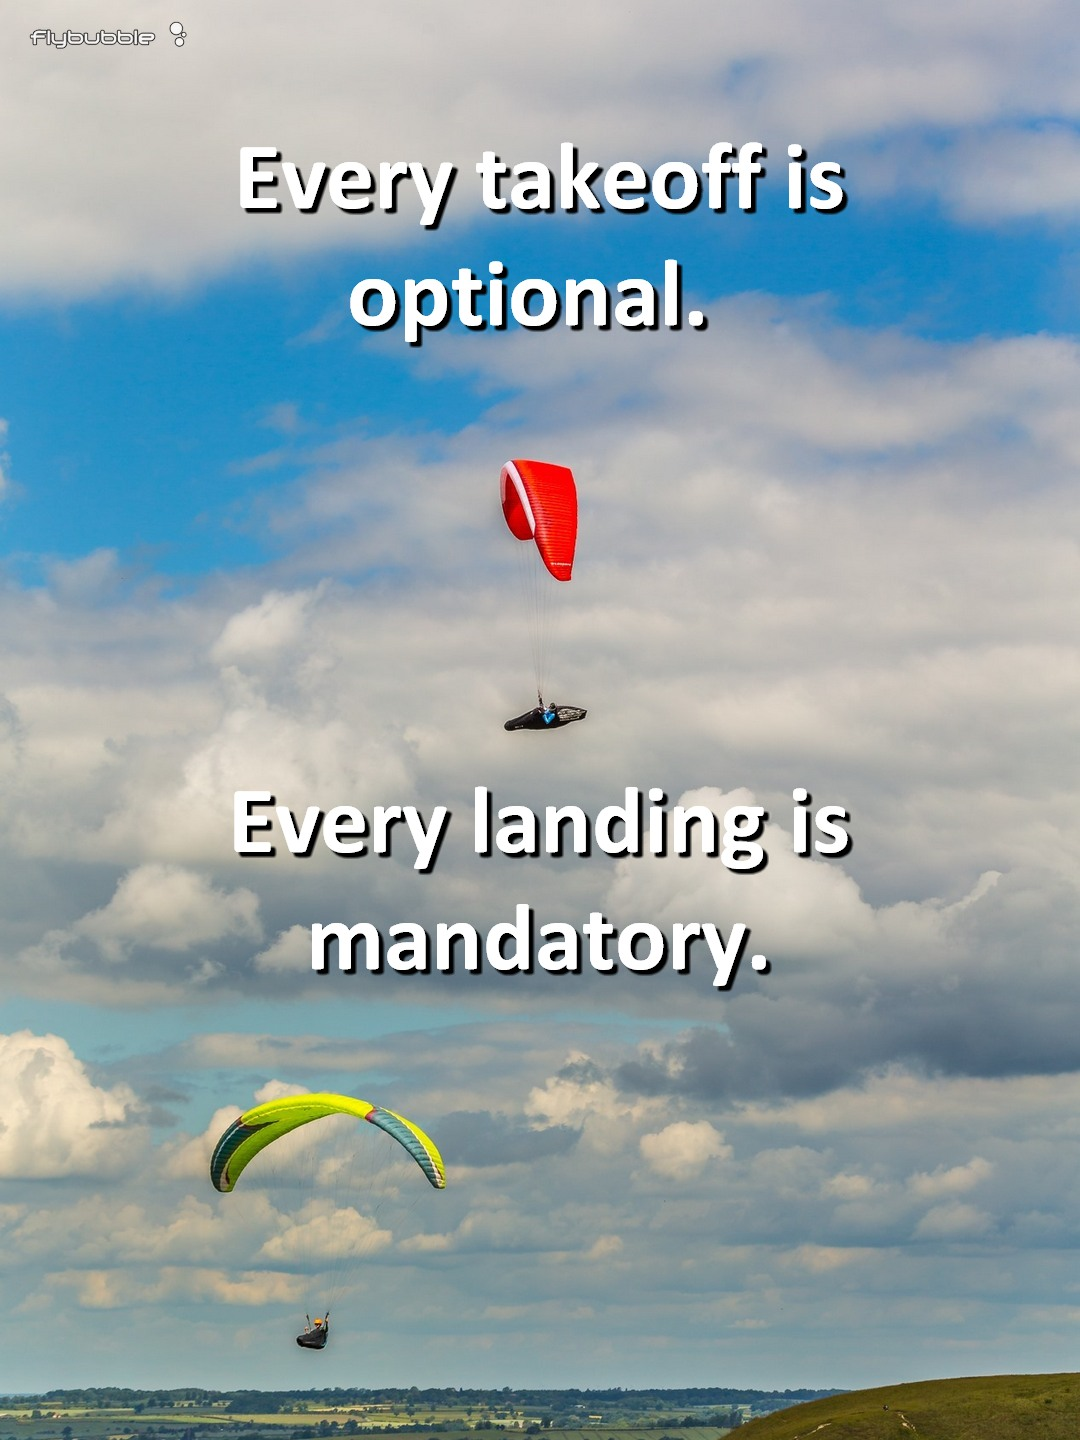 Every takeoff is optional. Every landing is mandatory.